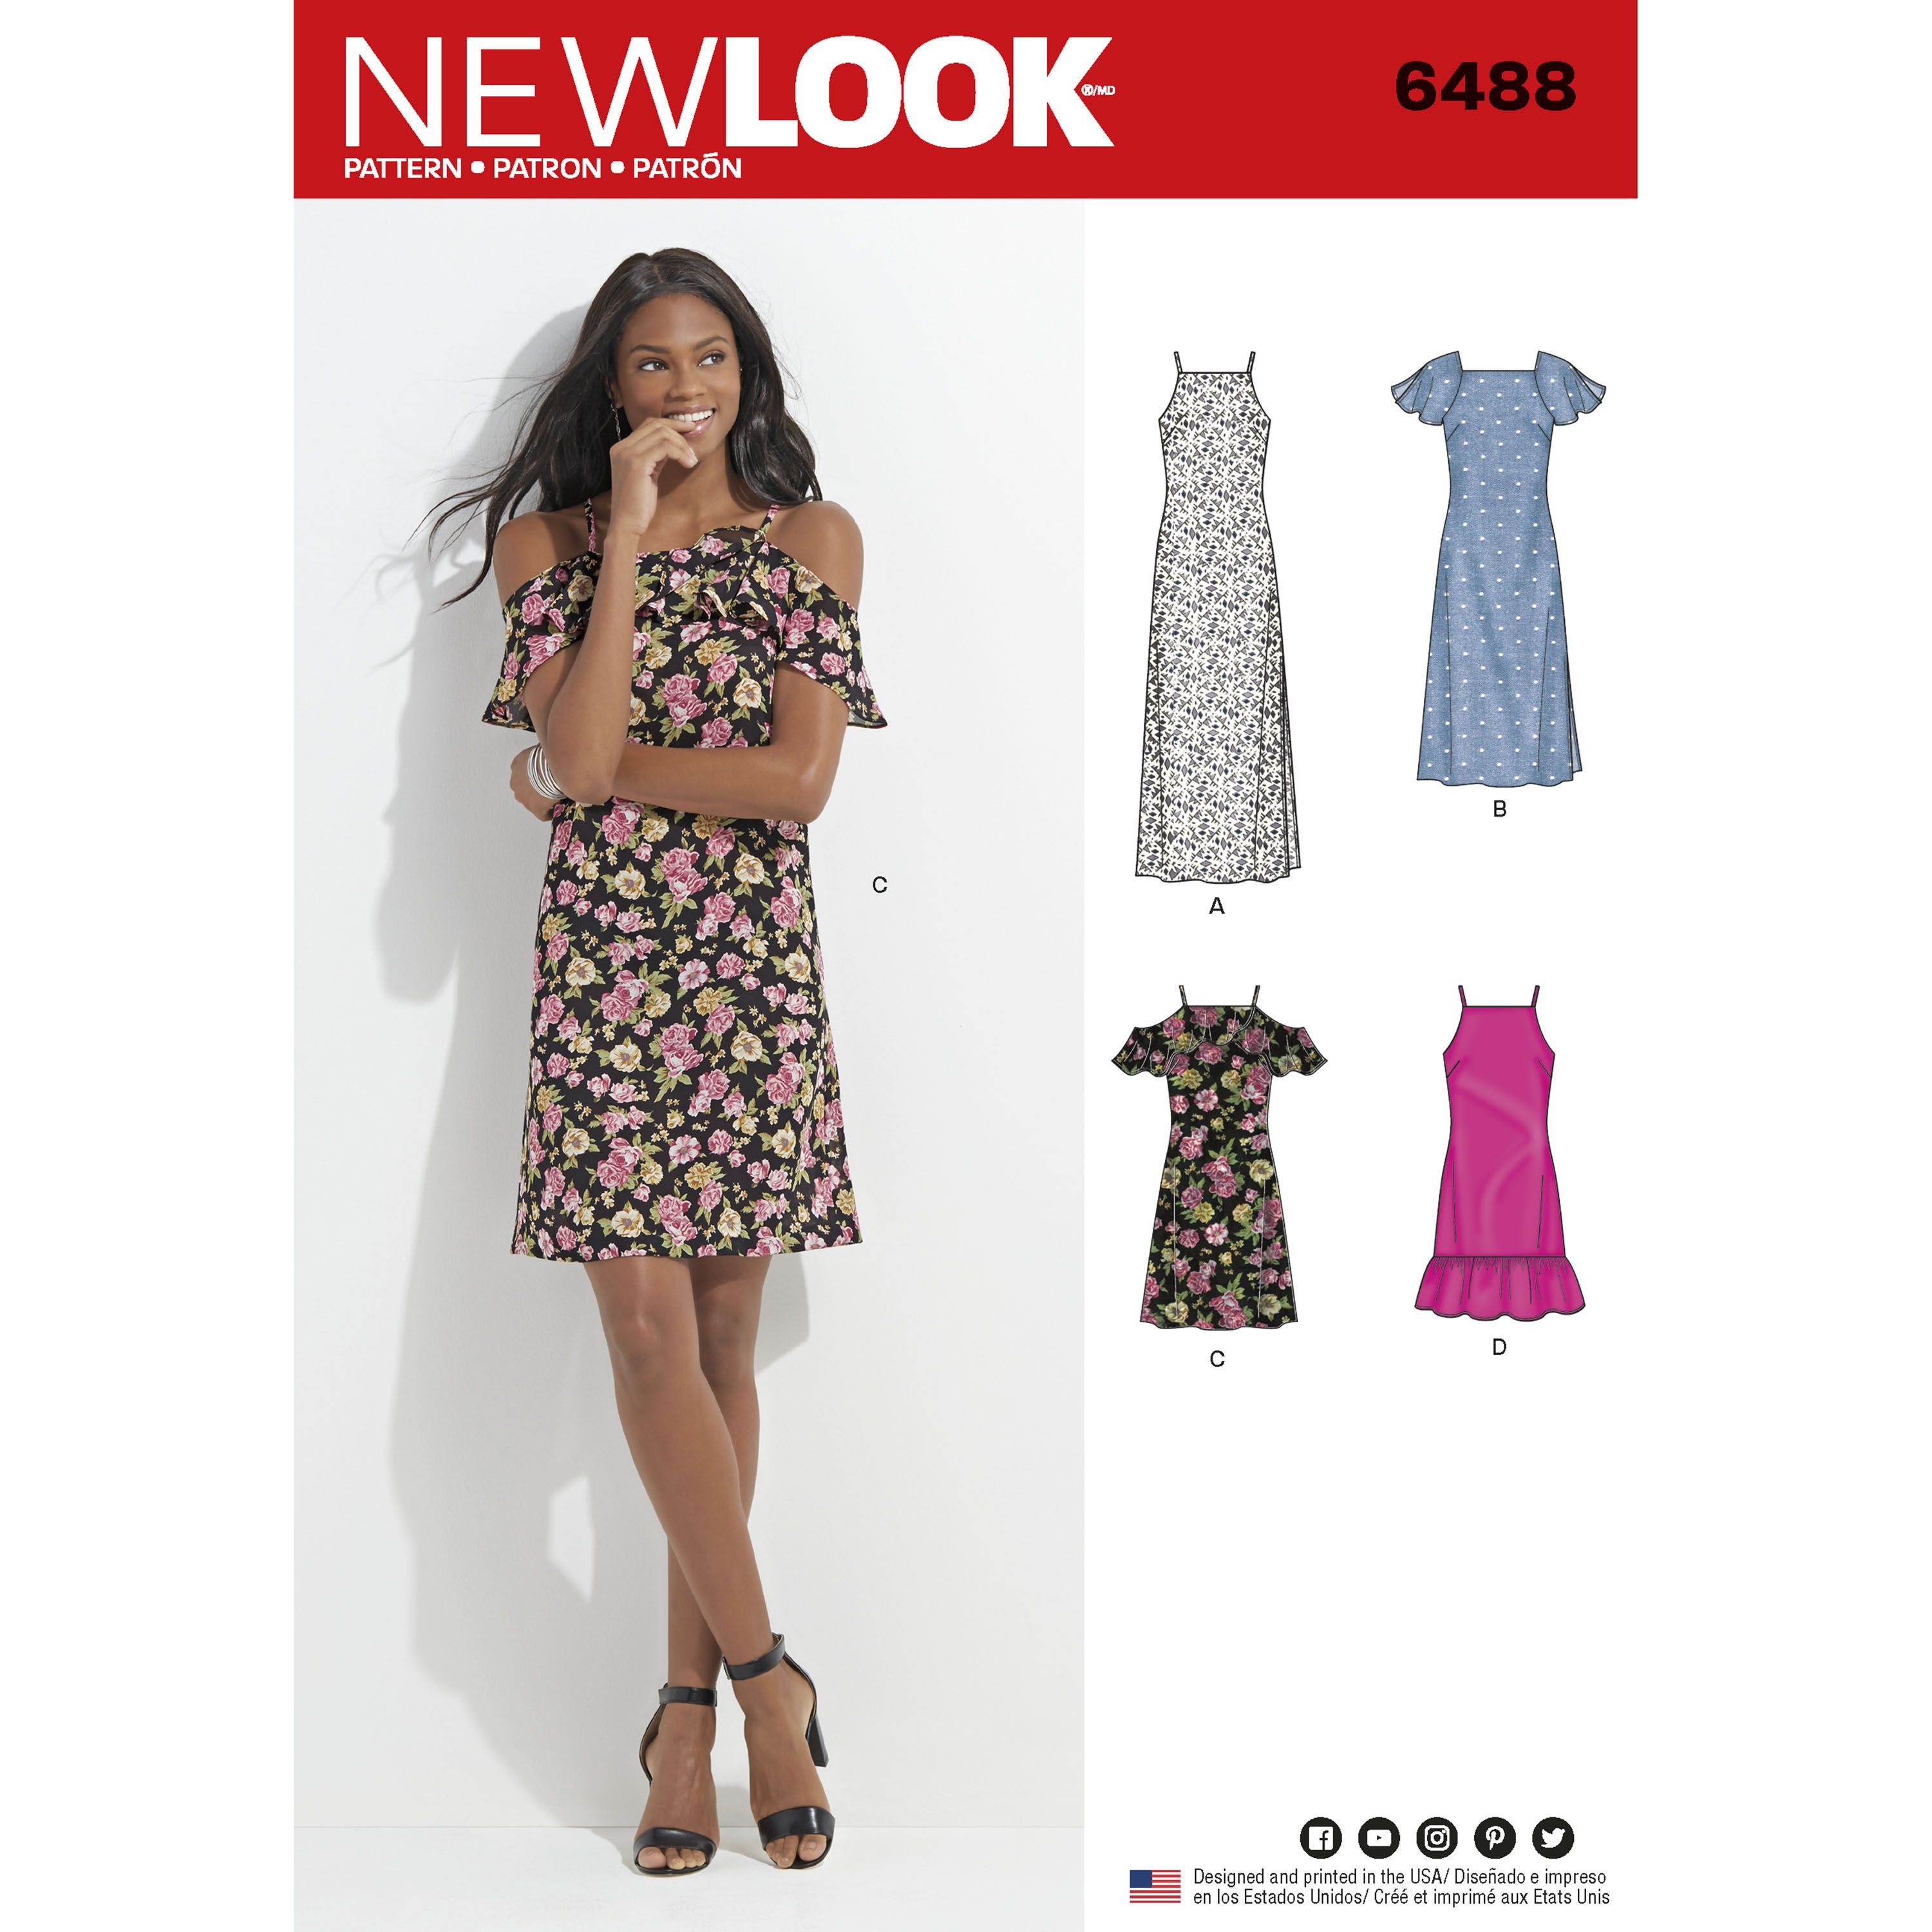 dd46dc6ebe81 Purchase New Look 6488 Misses Dress with Length and Sleeve Variations and  read its pattern reviews. Find other Dresses